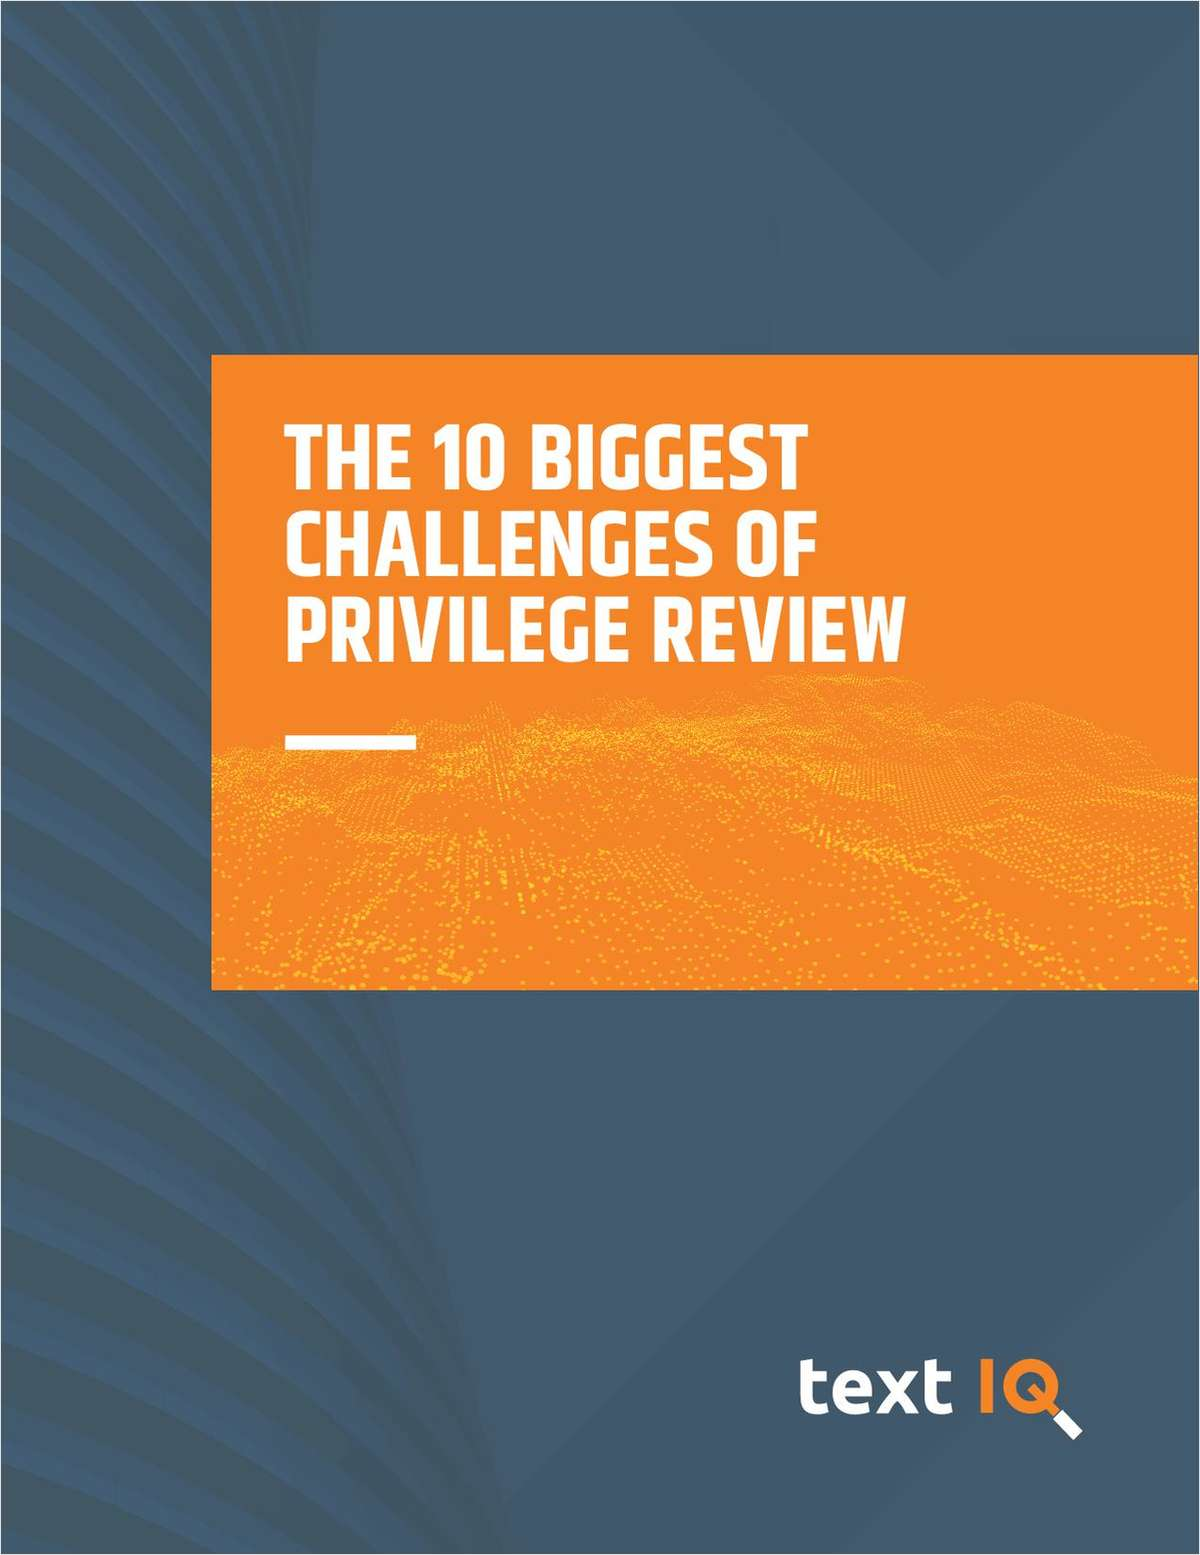 The 10 Biggest Challenges of Privilege Review